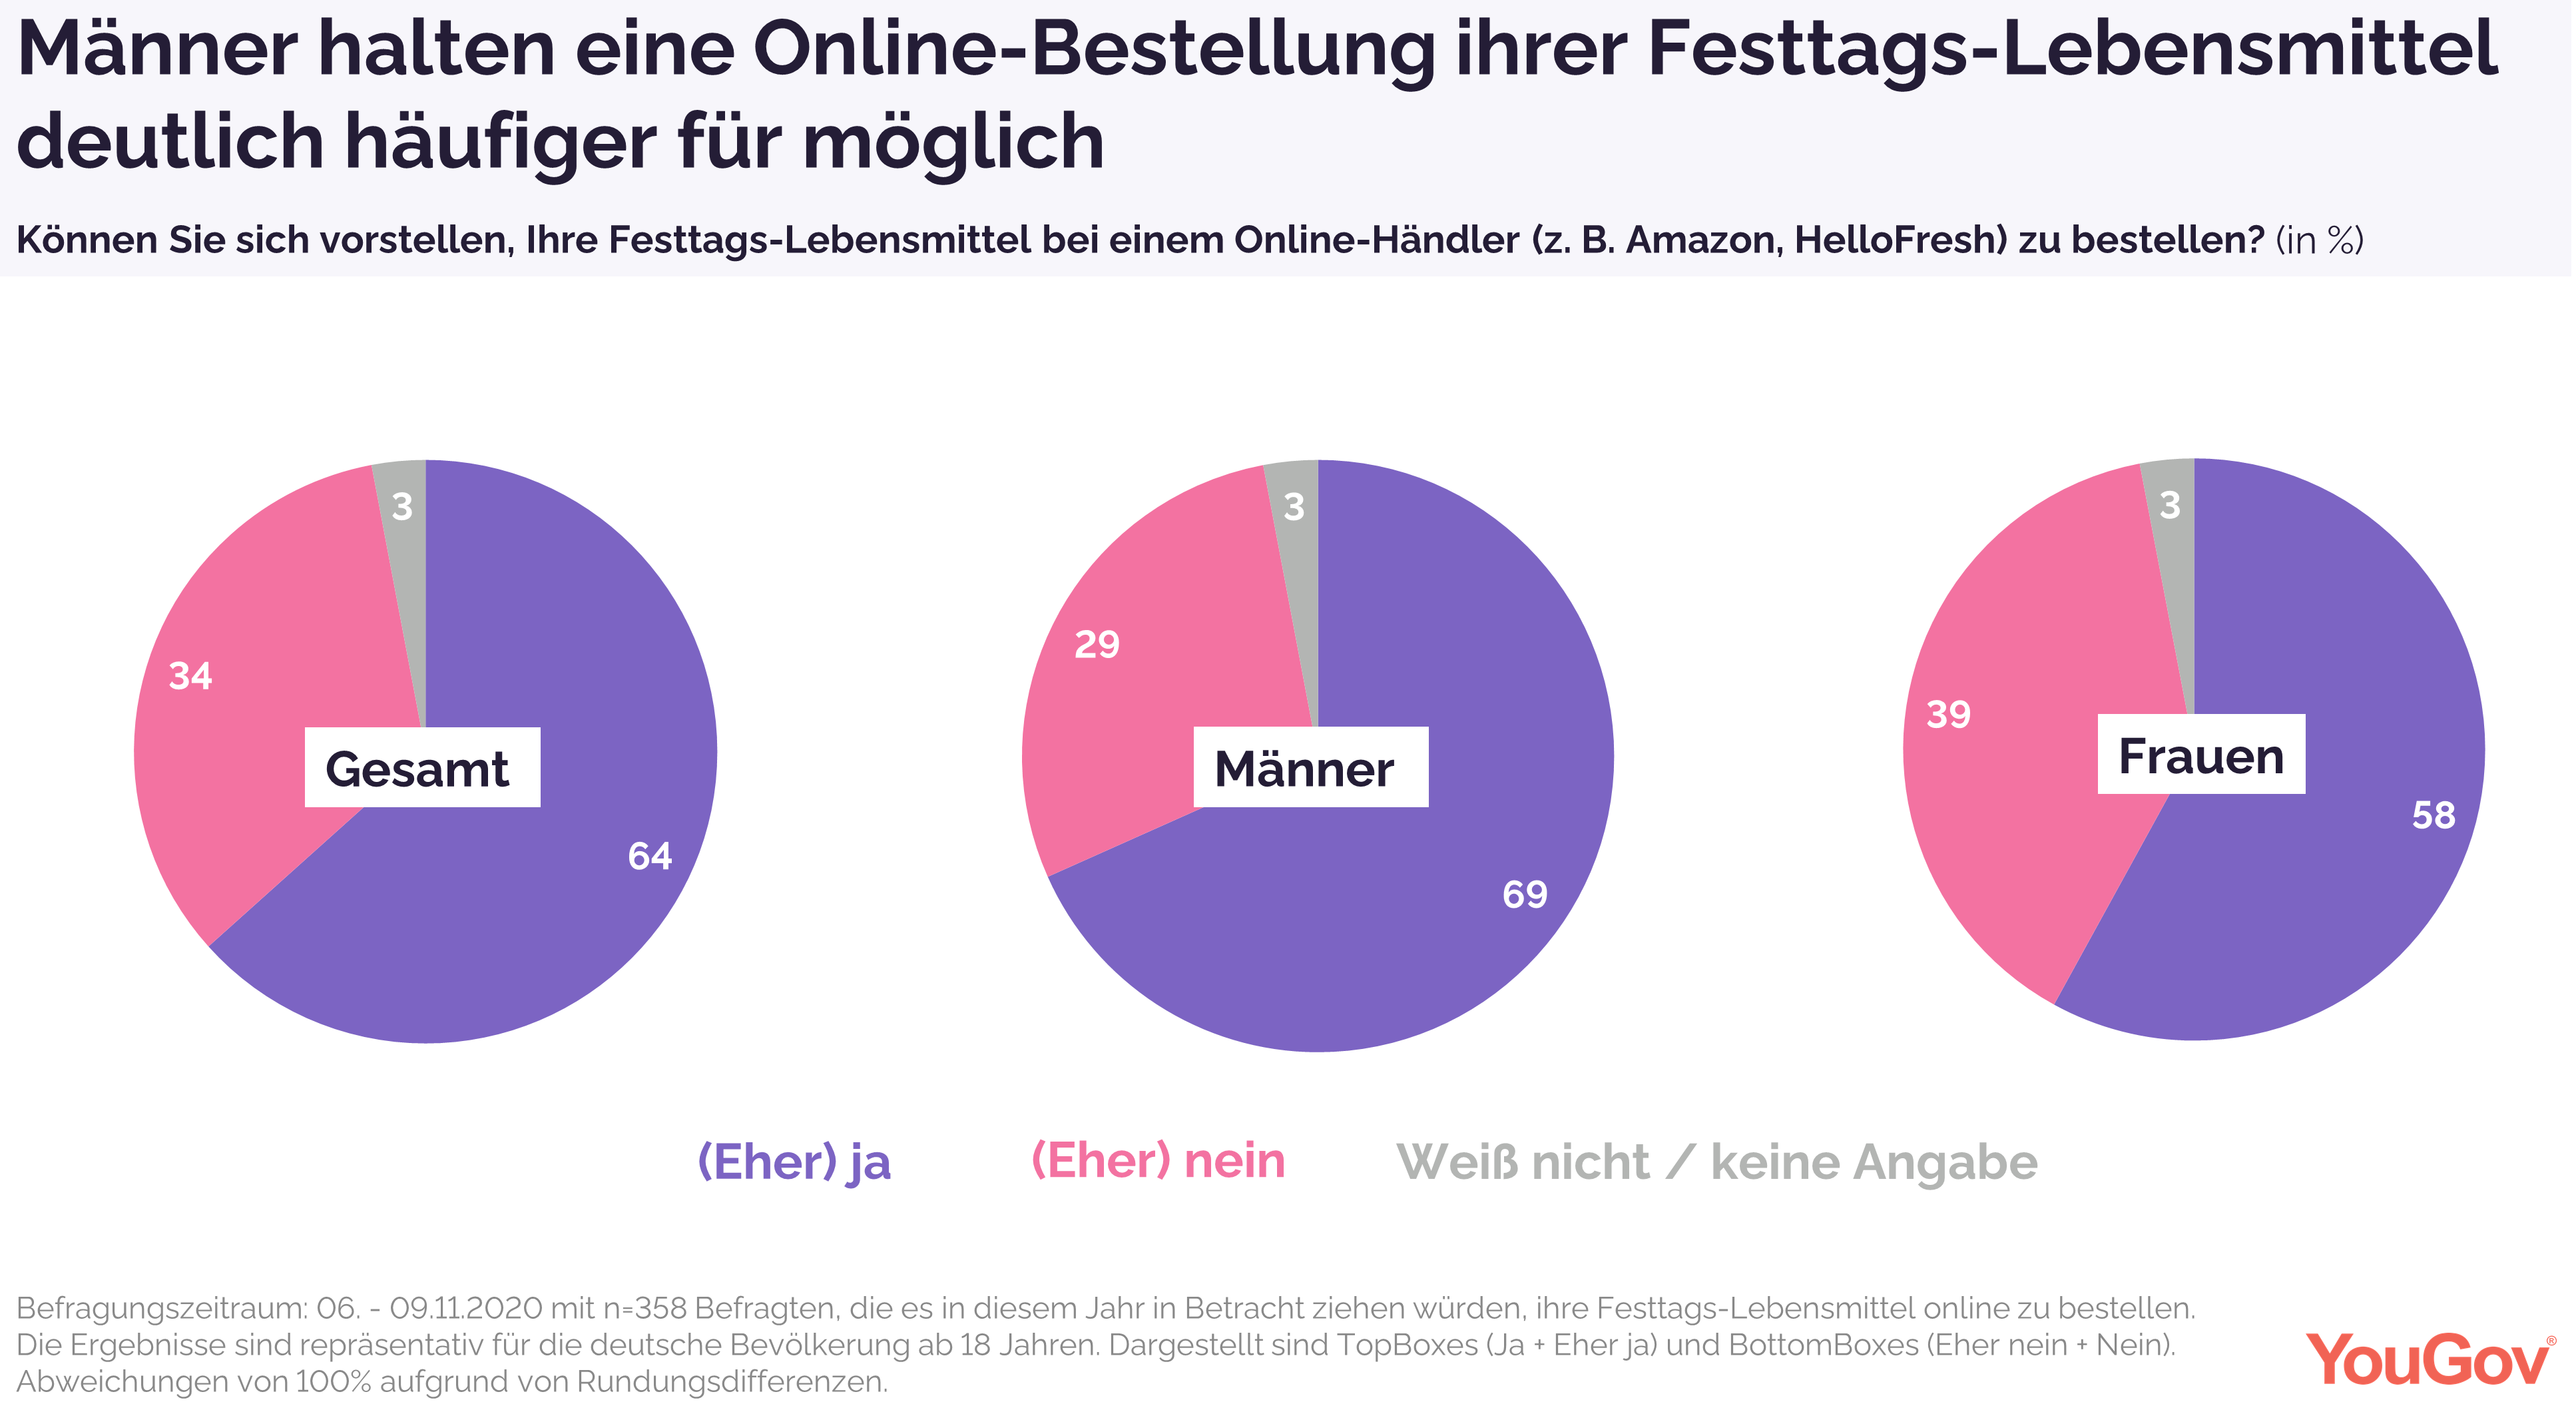 Amazon und HelloFresh